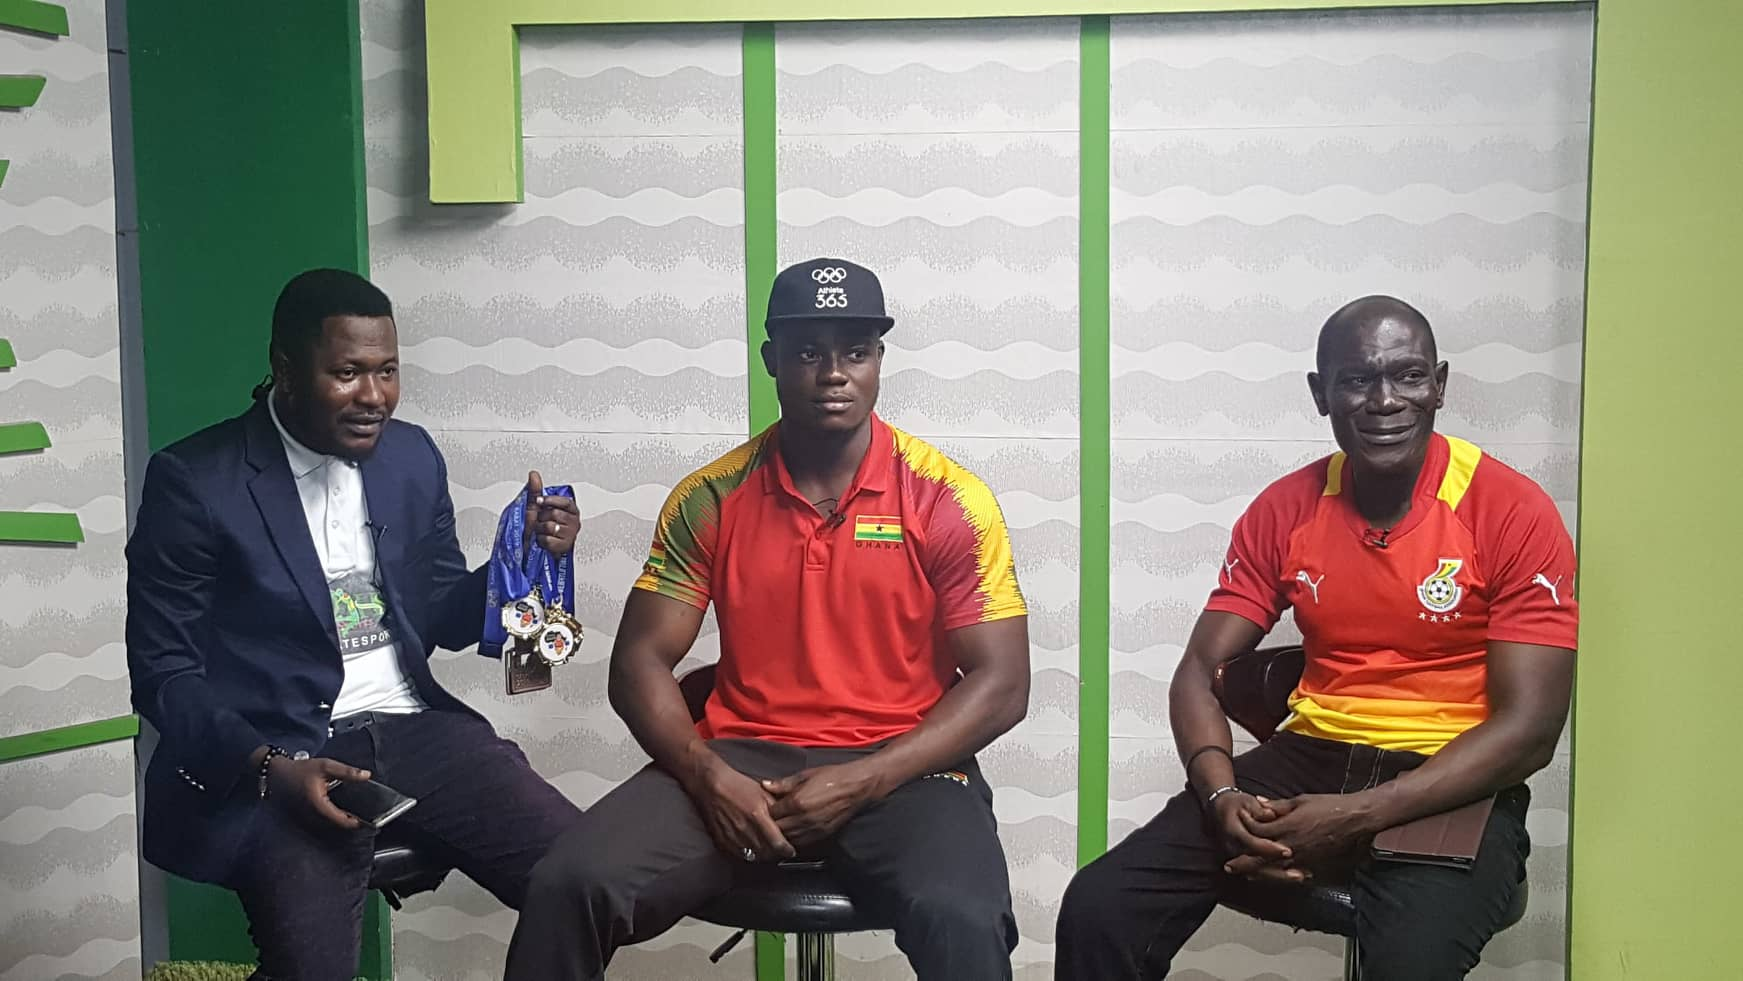 HSTV / Ultimate Sports Hosts African Weightlifting Champion Christian Amoah